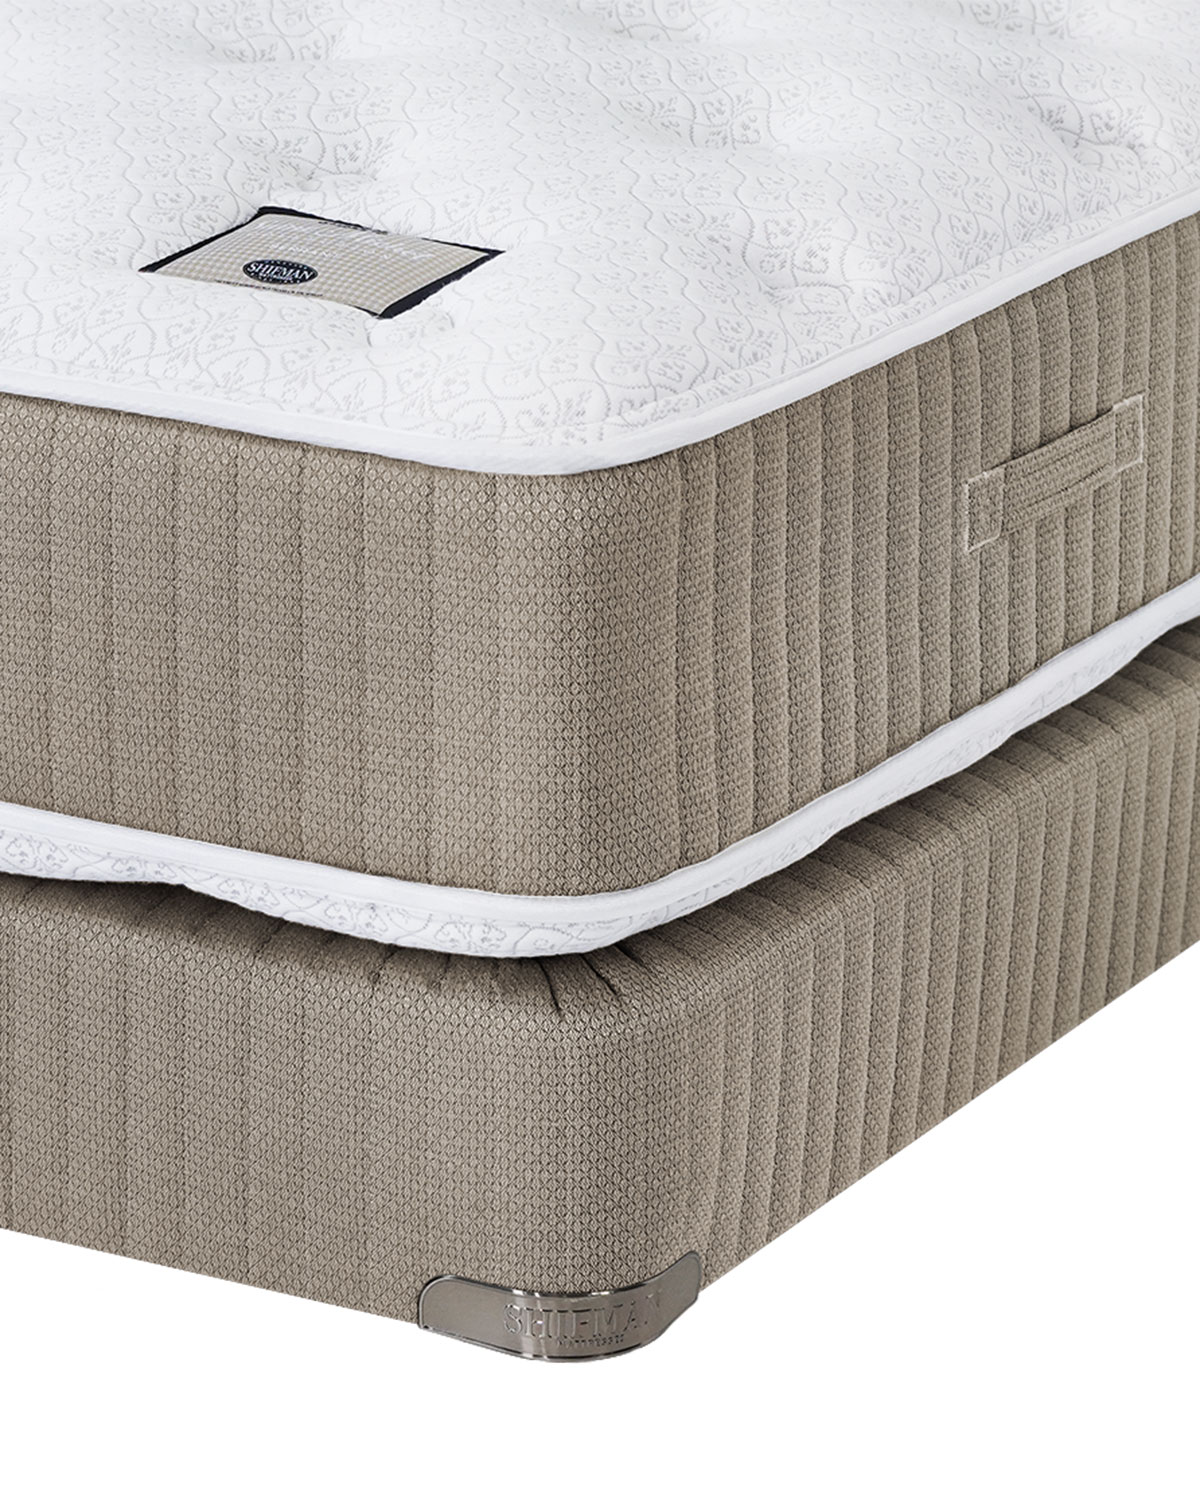 Saint Michele Serrant Collection California King Mattress & Box Spring Set